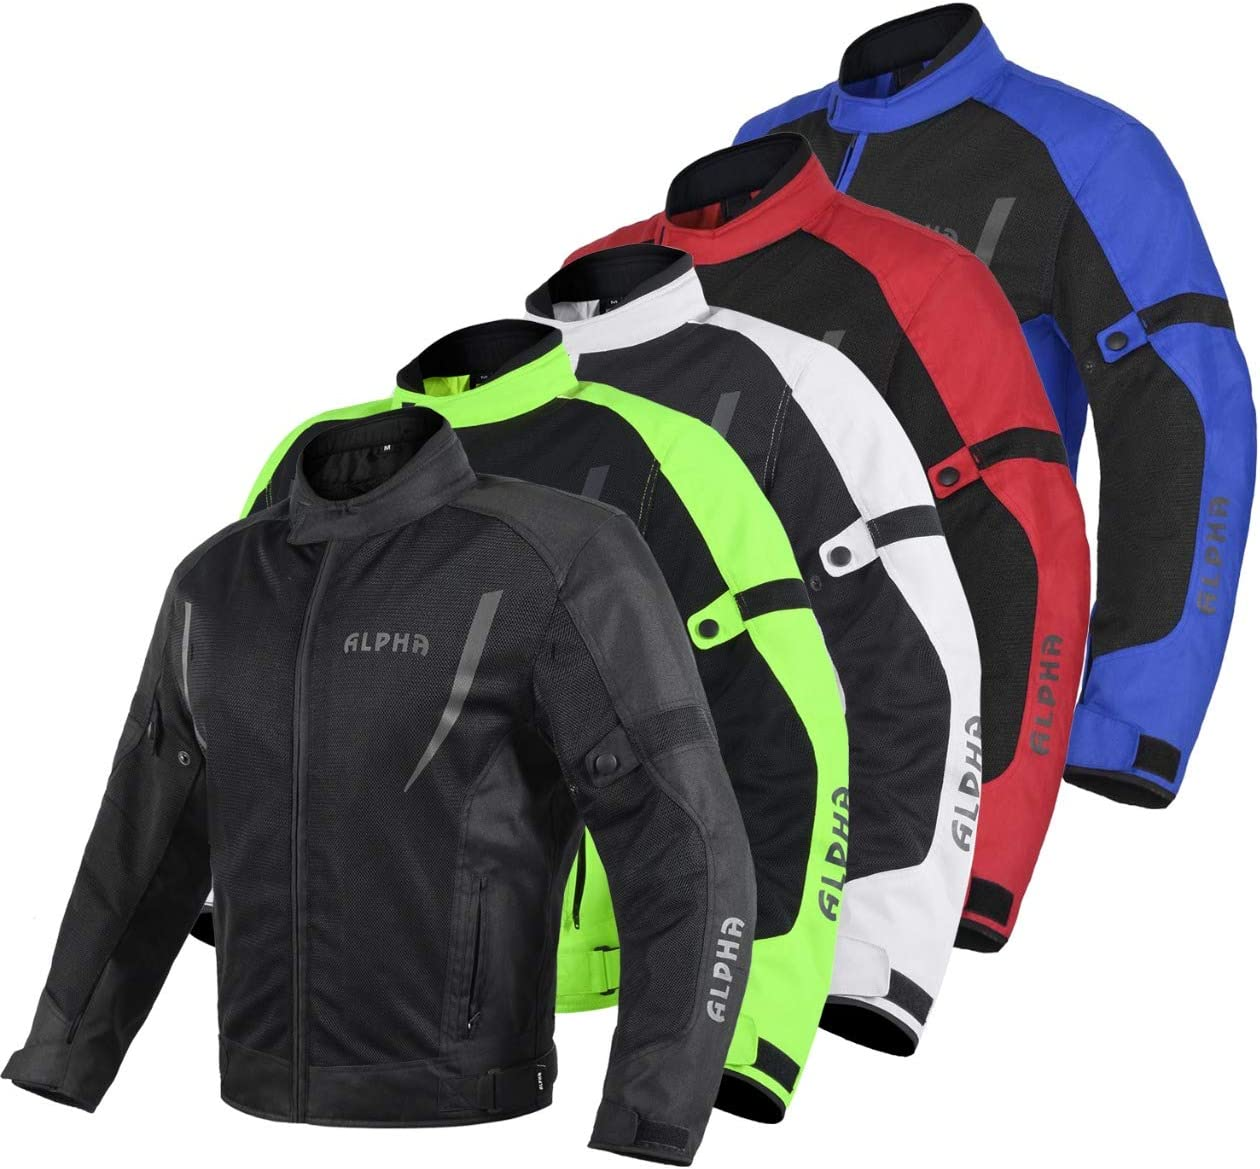 HI VIS MESH MOTORCYCLE JACKET FOR MENS RIDING BIKERS RACING DUAL SPORTS BIKE ARMORED PROTECTIVE… (BLACK, X-LARGE): Automotive